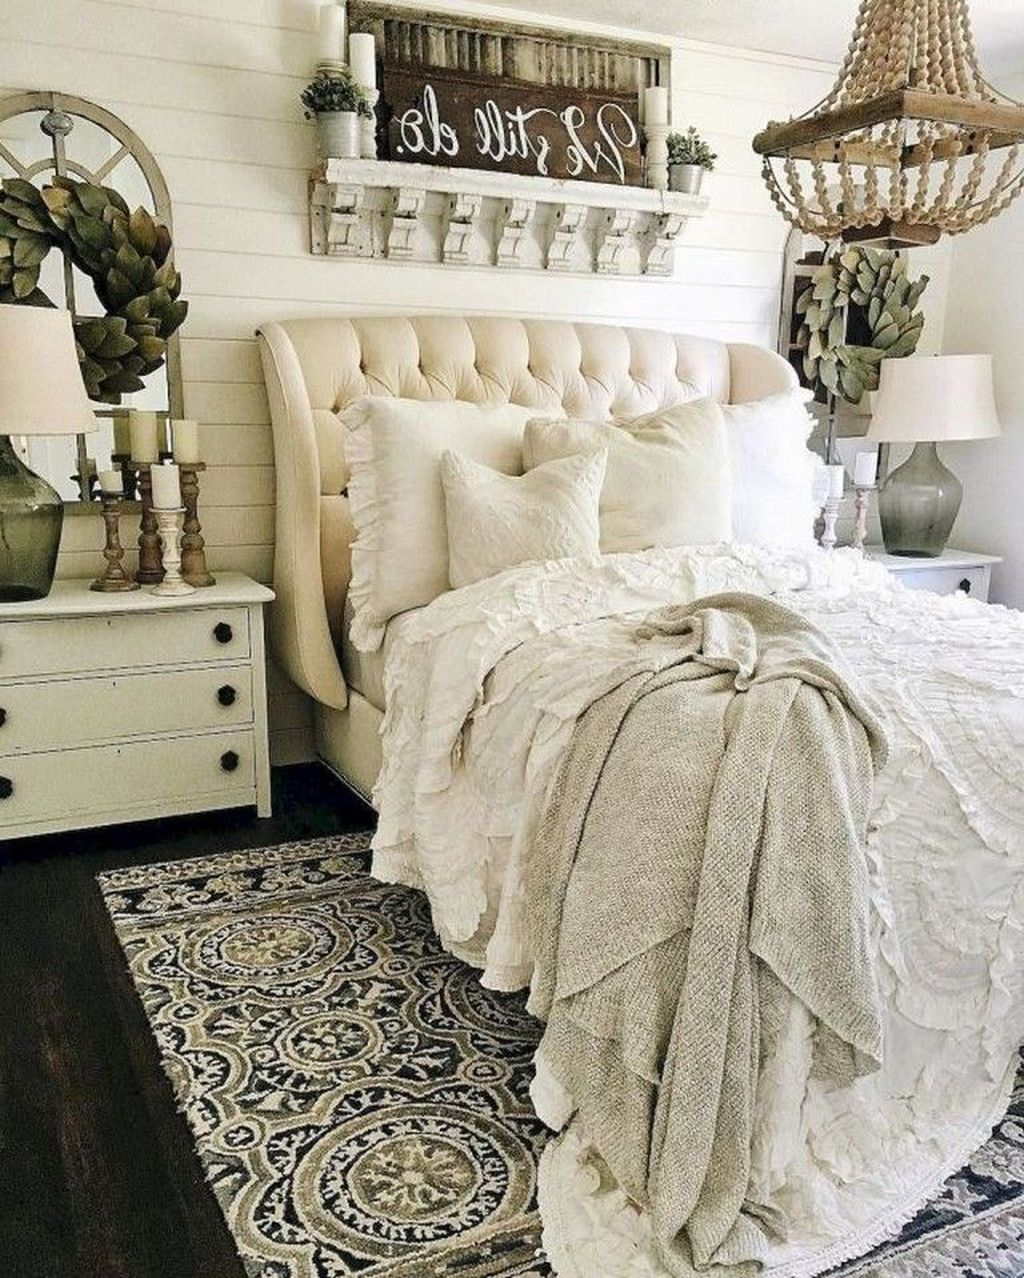 The Best Small Master Bedroom Design Ideas WIth Farmhouse Style 10